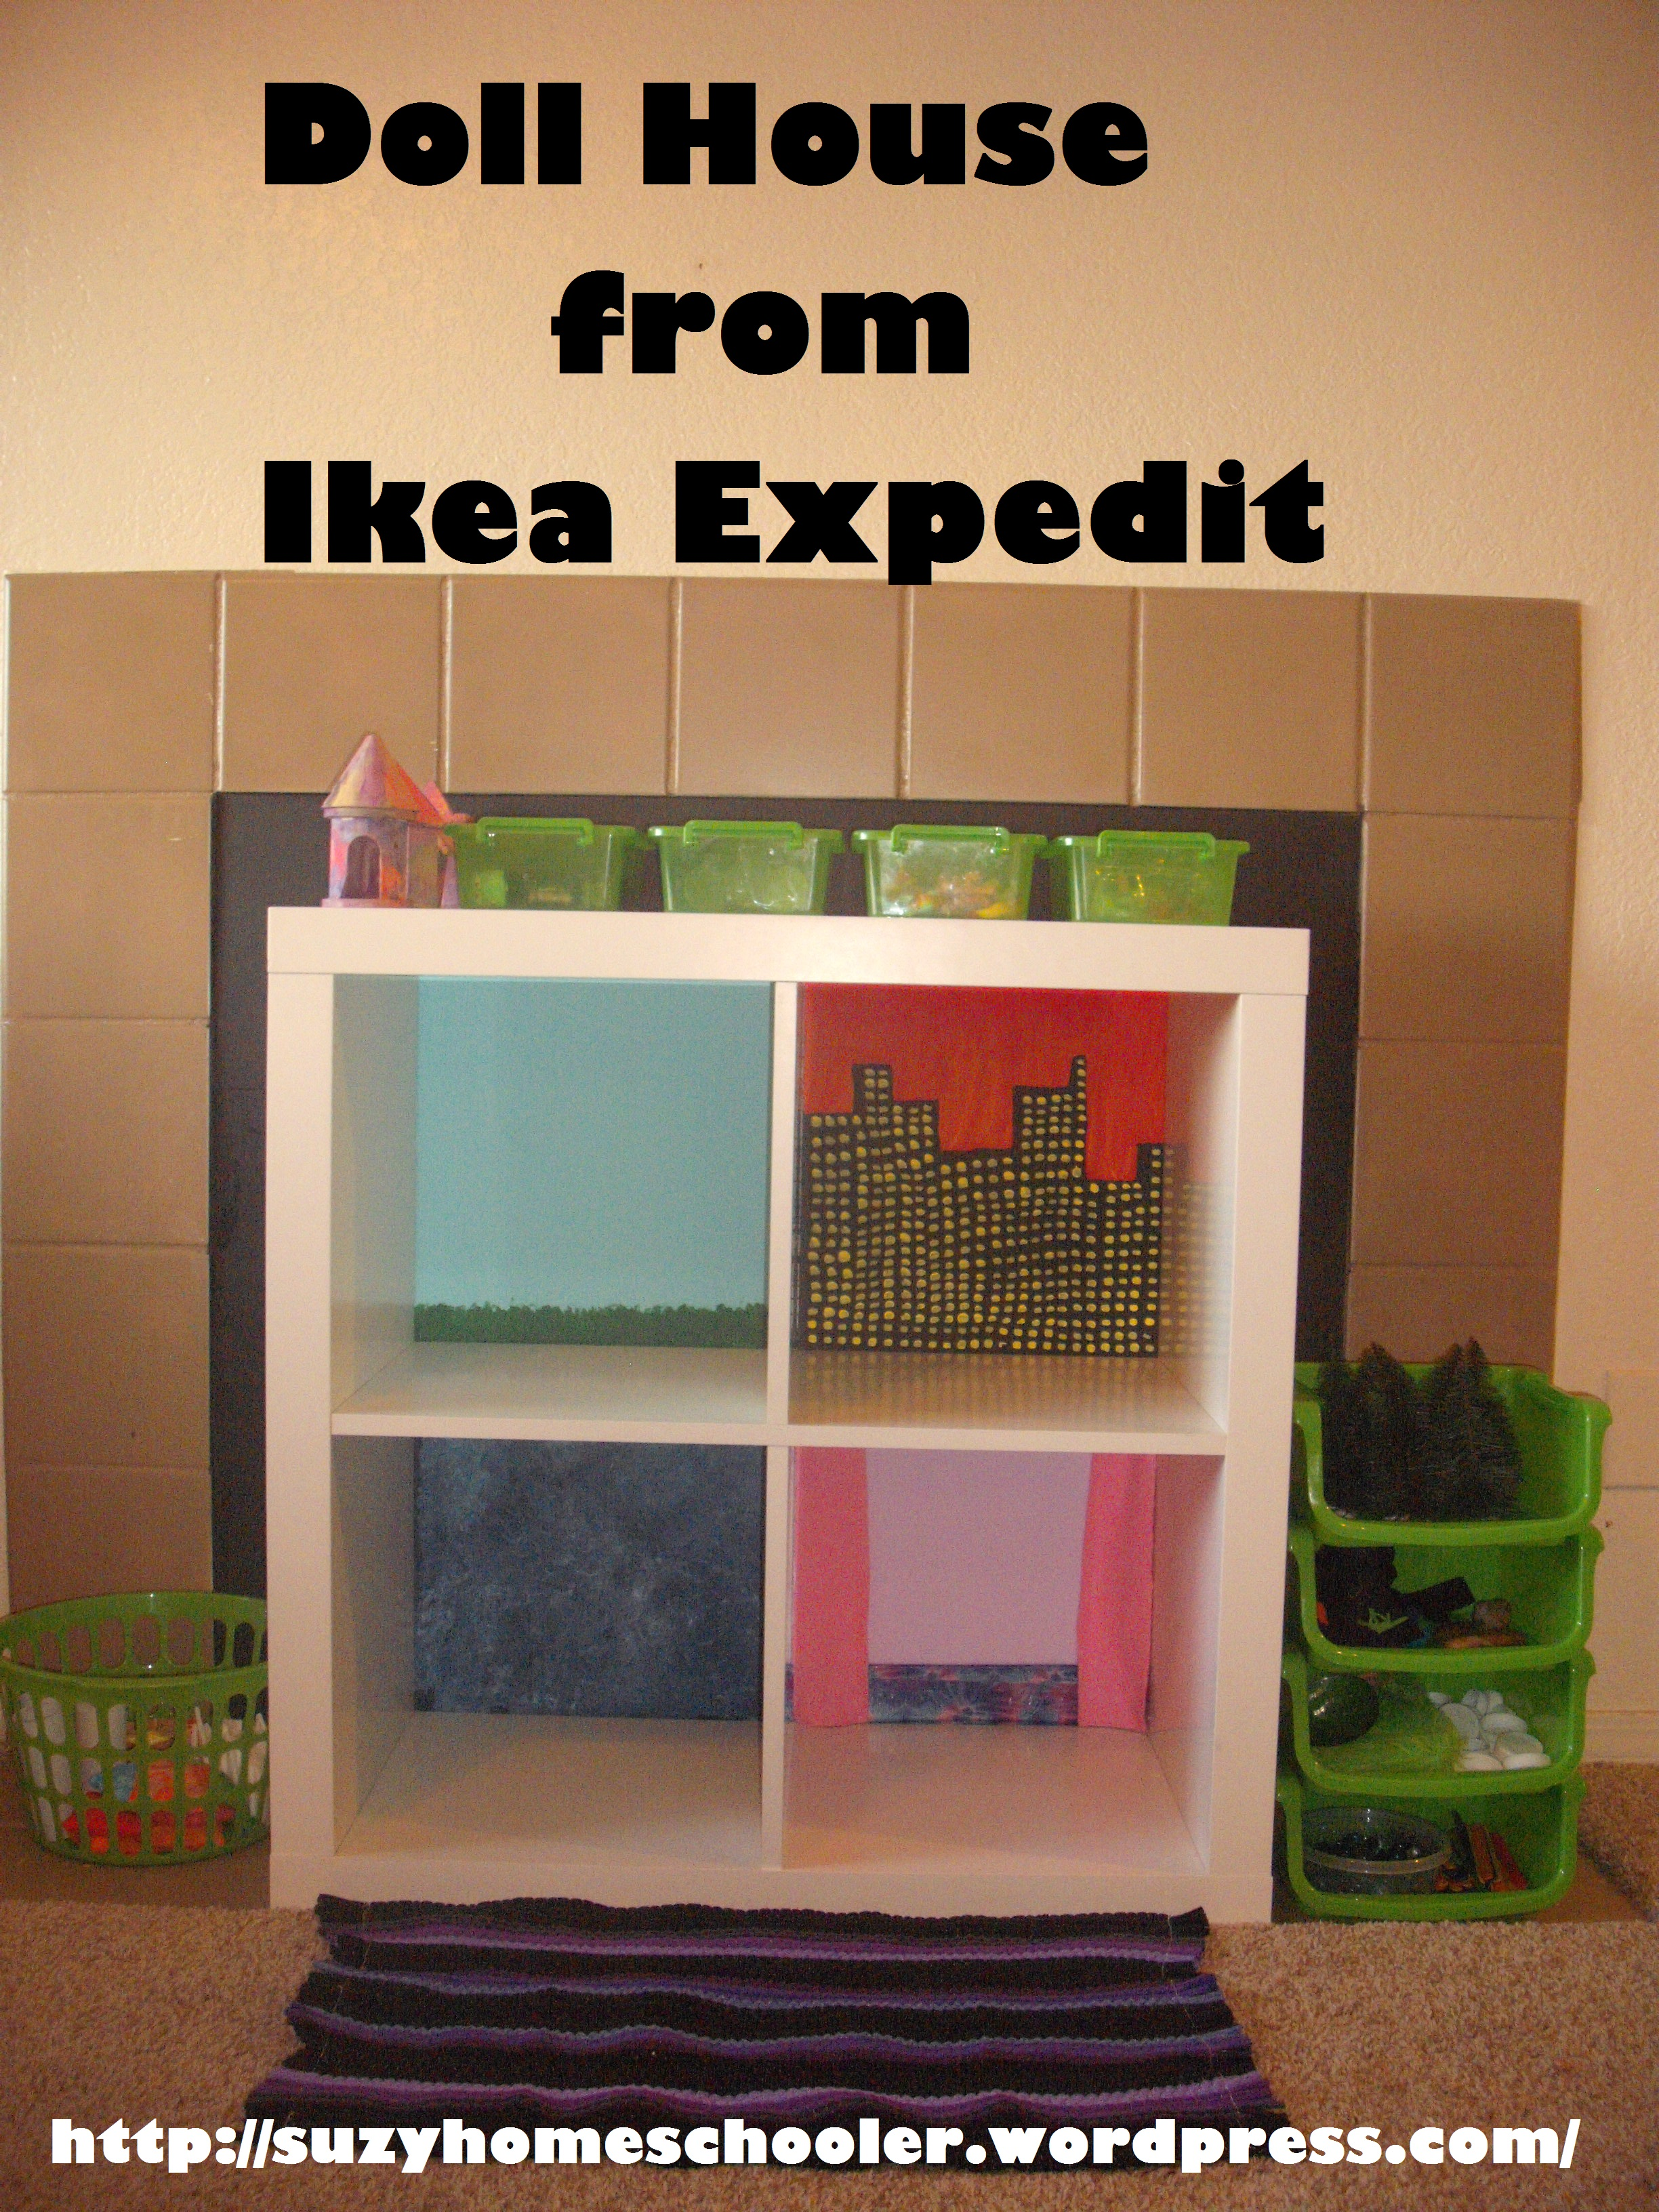 Doll House From Ikea Expedit Suzy Homeschooler